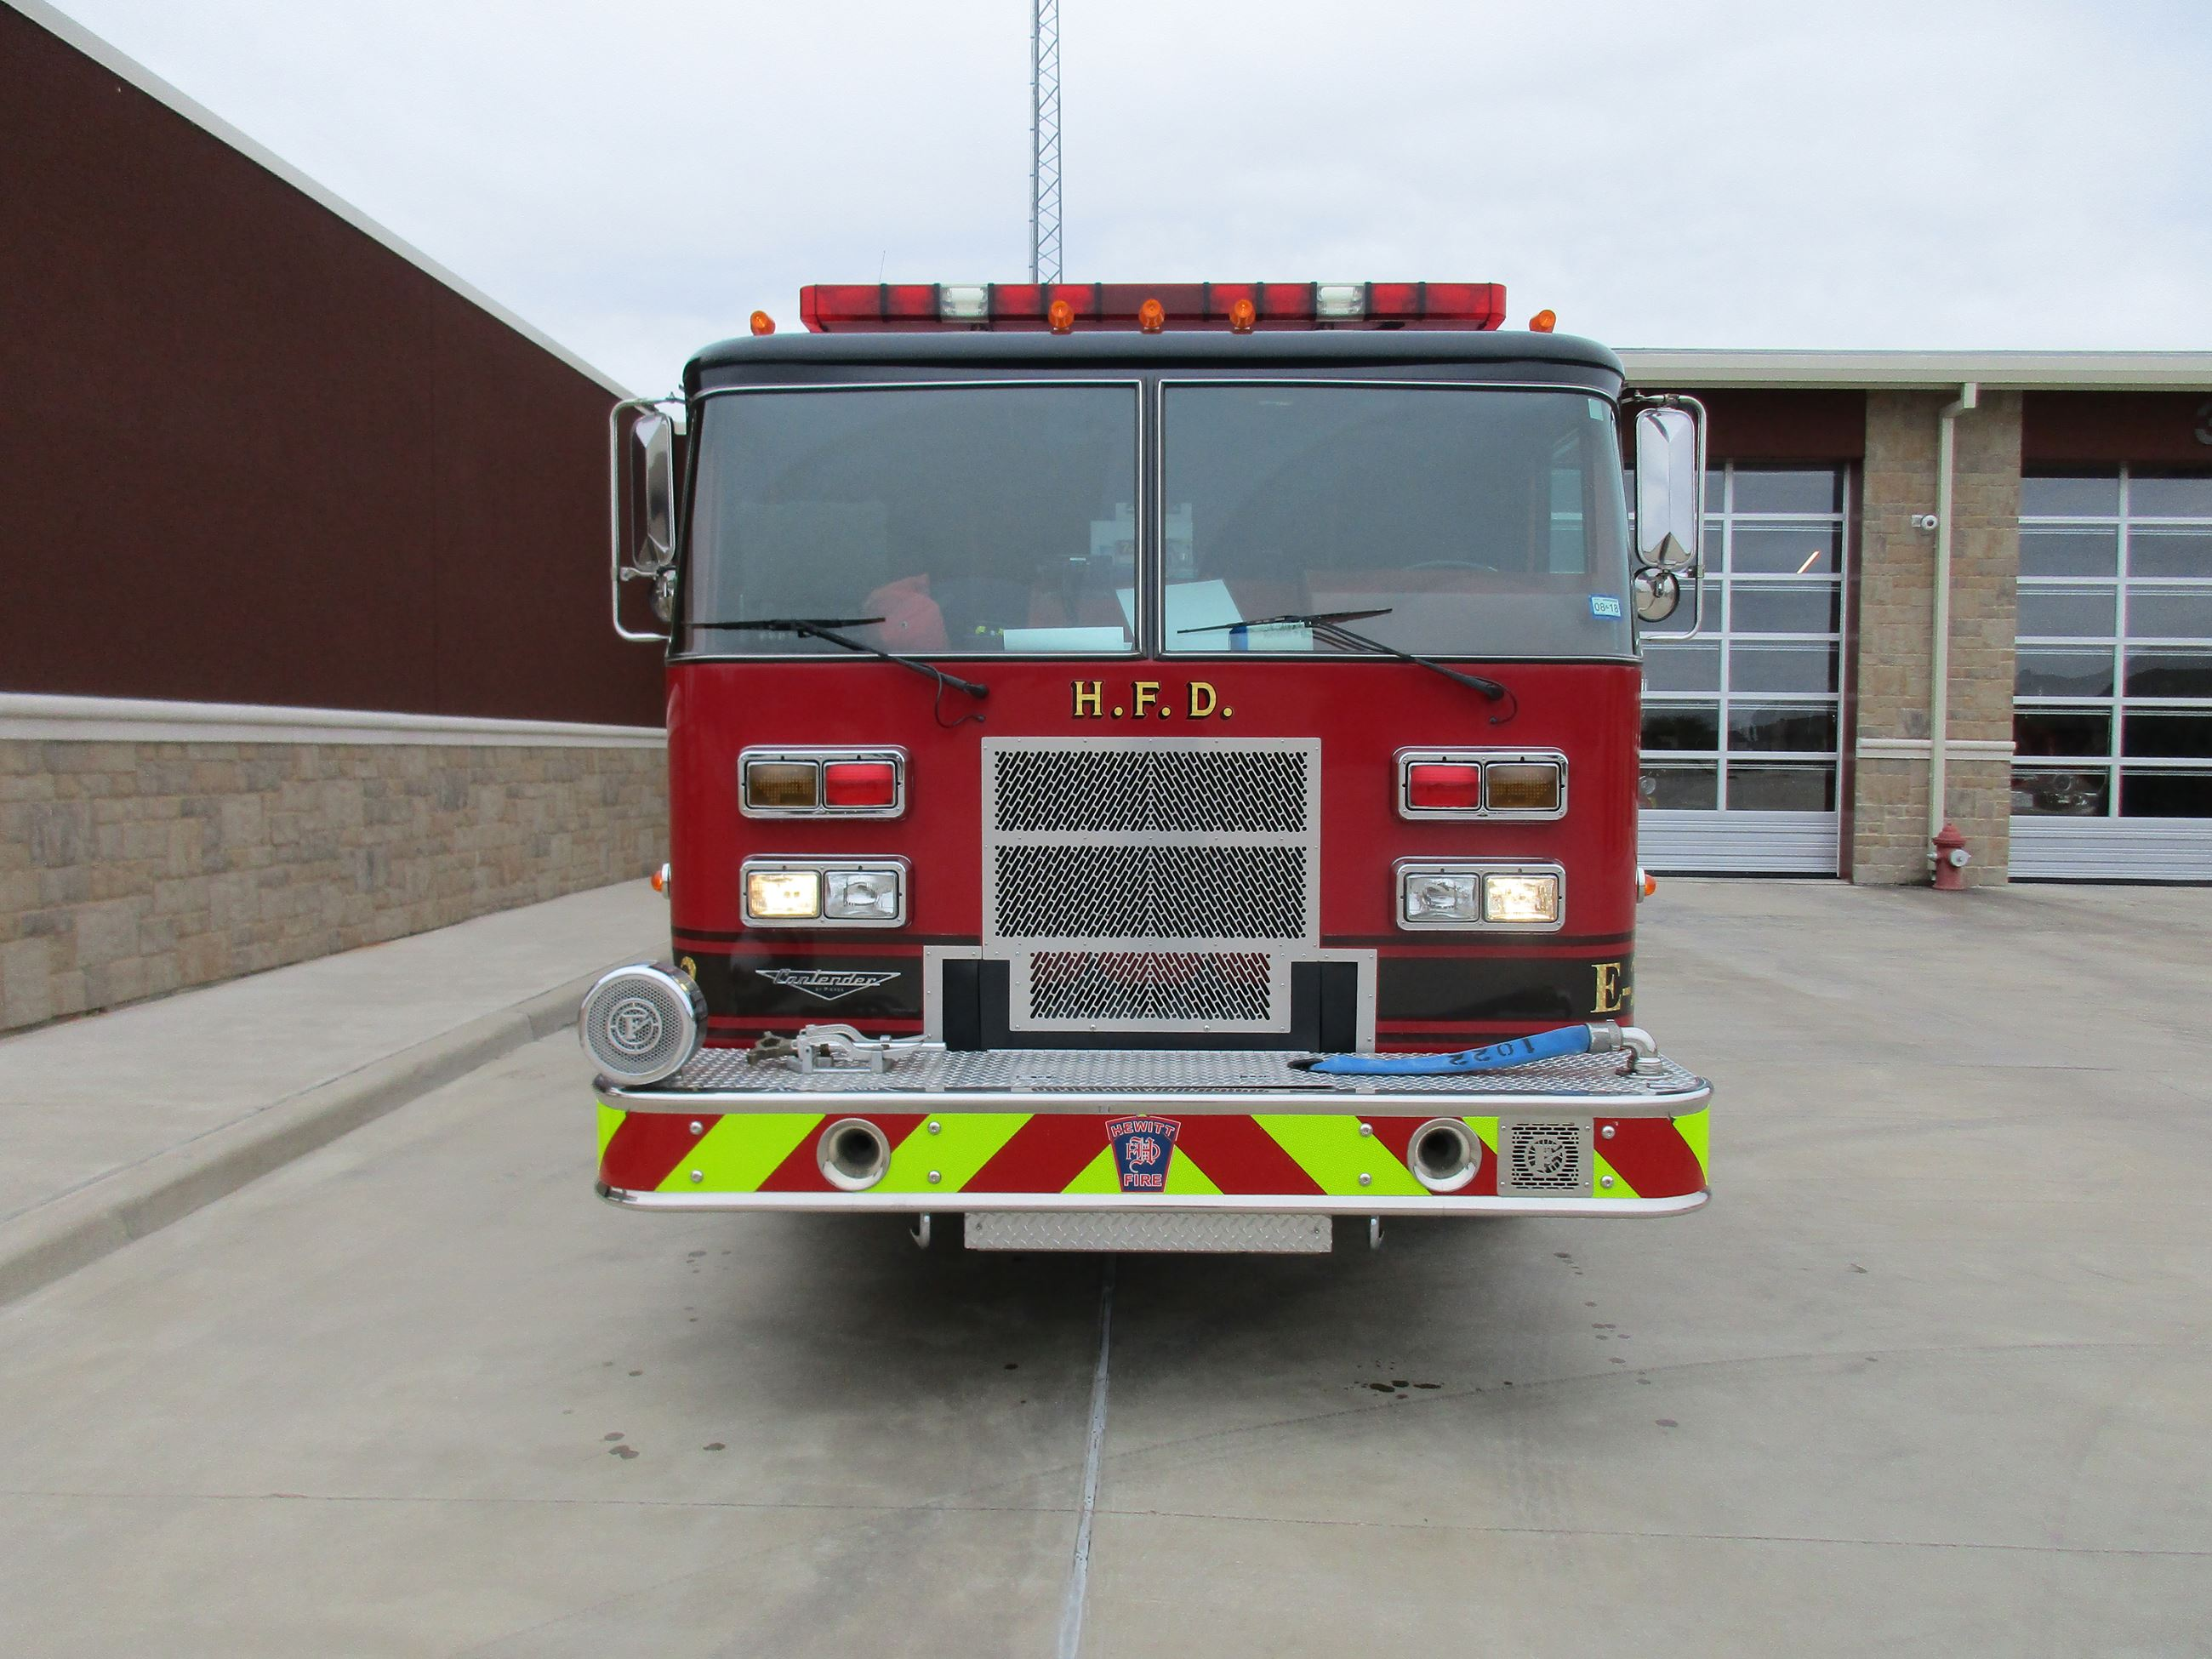 engine 1 holds 750 gallons of water and is capable of pumping 1250 gpm  it  is the first responding apparatus for medical emergencies and responds with